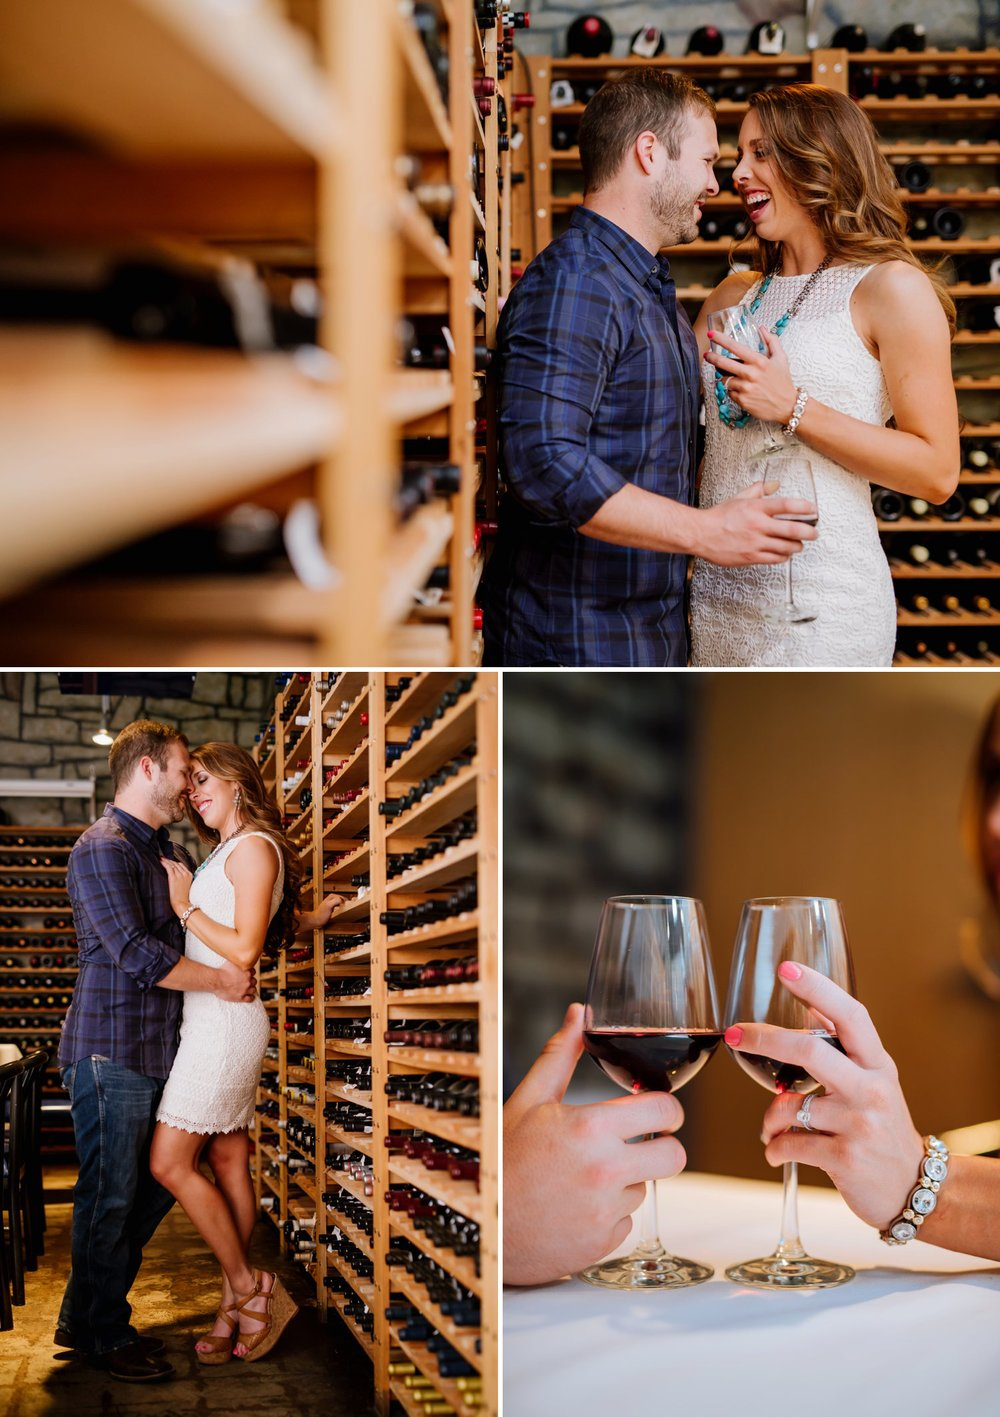 An adorable engagement shoot in a private wine cellar! I love wine and it would be so fun to do my engagement photos in a winery! Wine-lover engagement photos by Maddie Mae Photography.